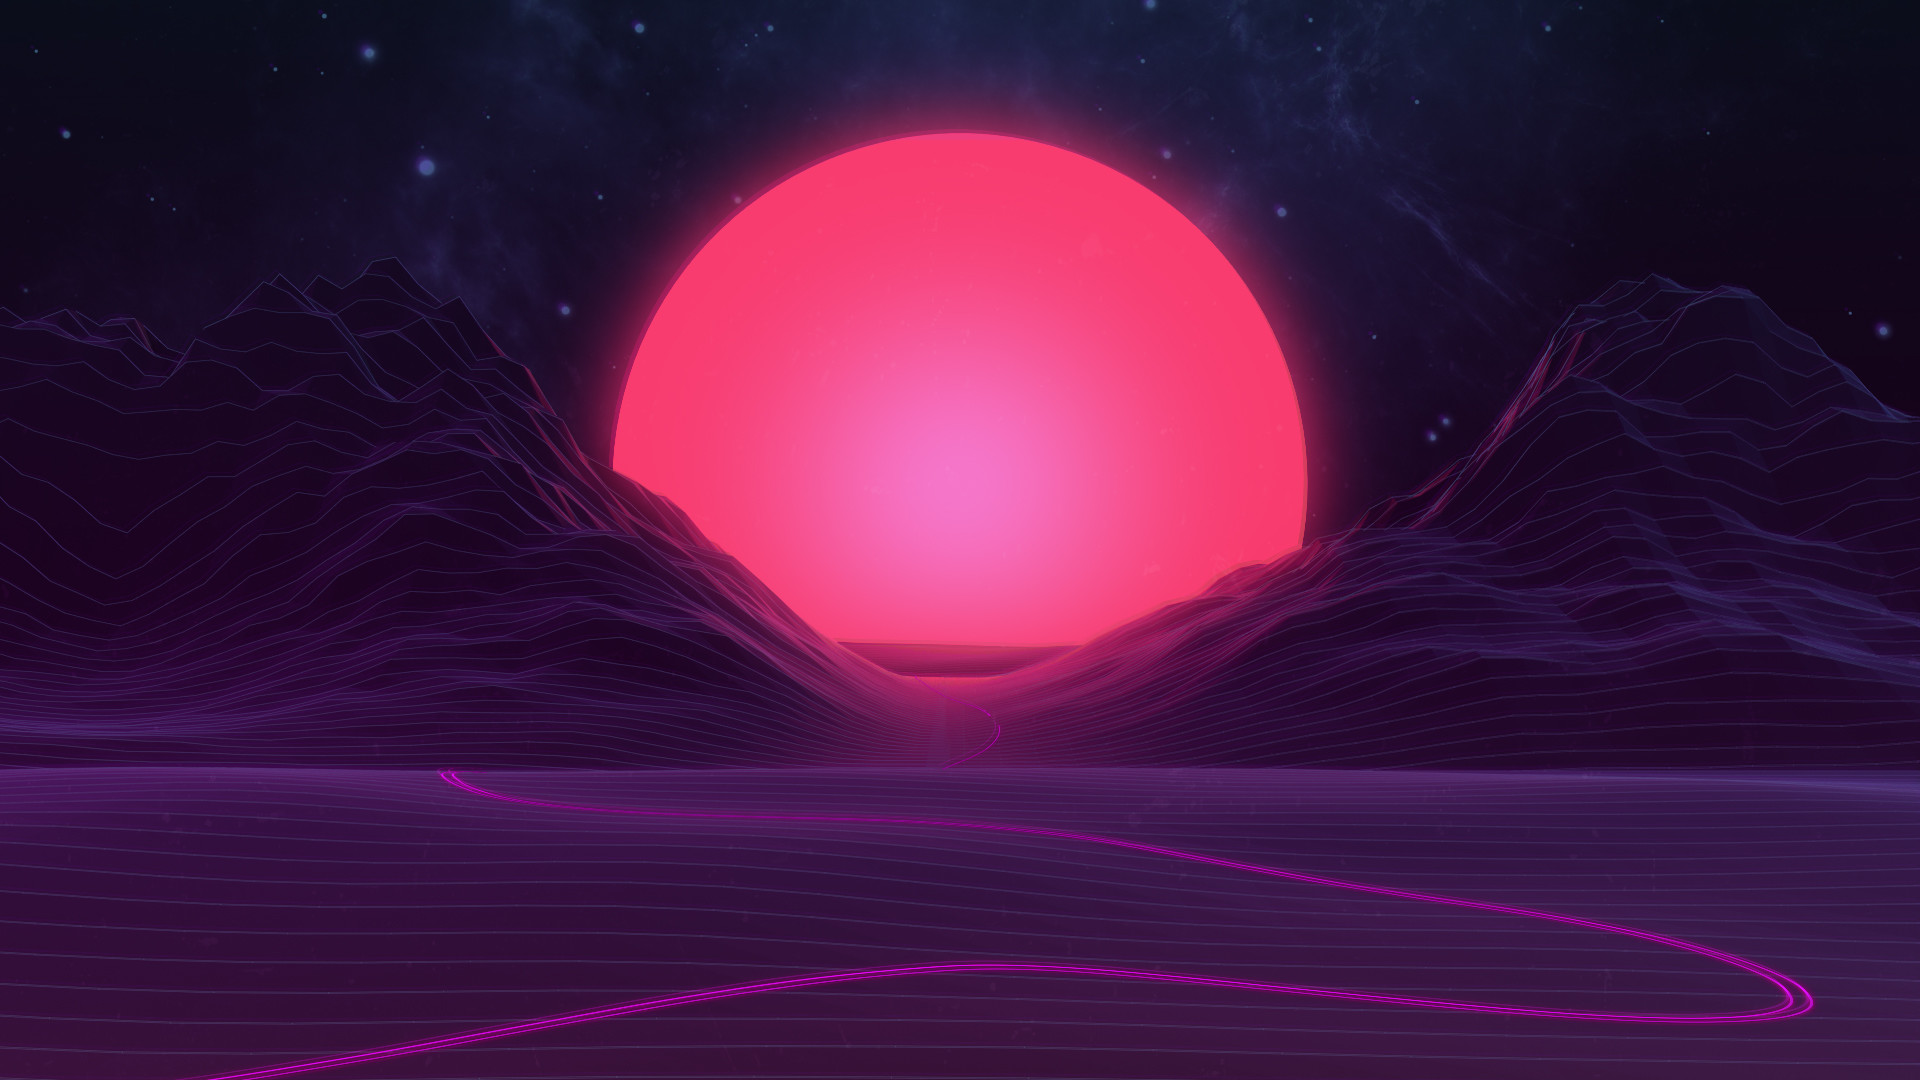 Neon Sunset by AxiomDesign Neon Sunset by AxiomDesign